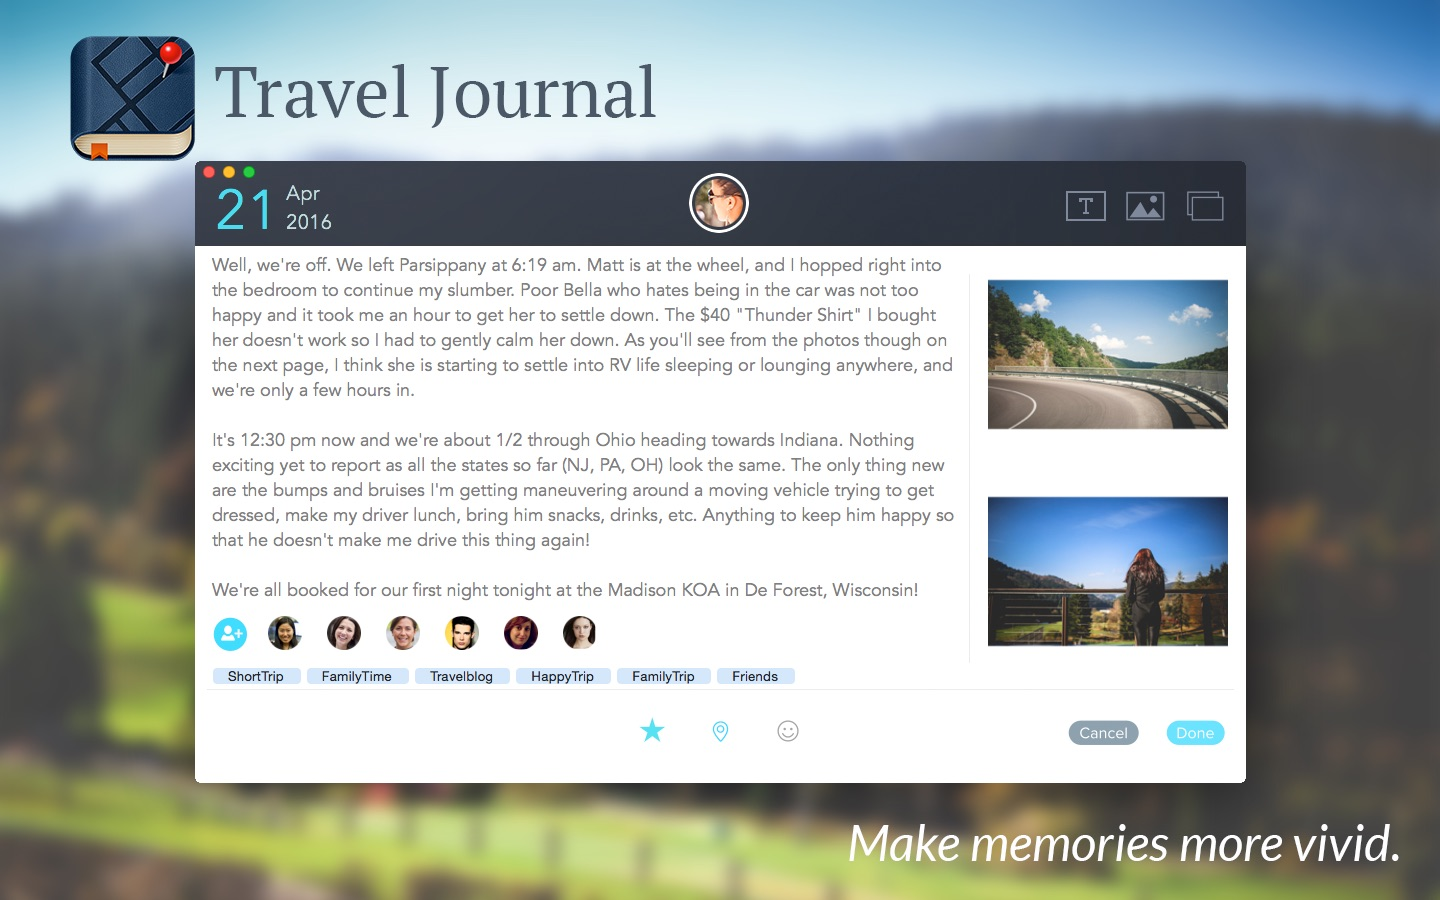 travel journal on the mac app store